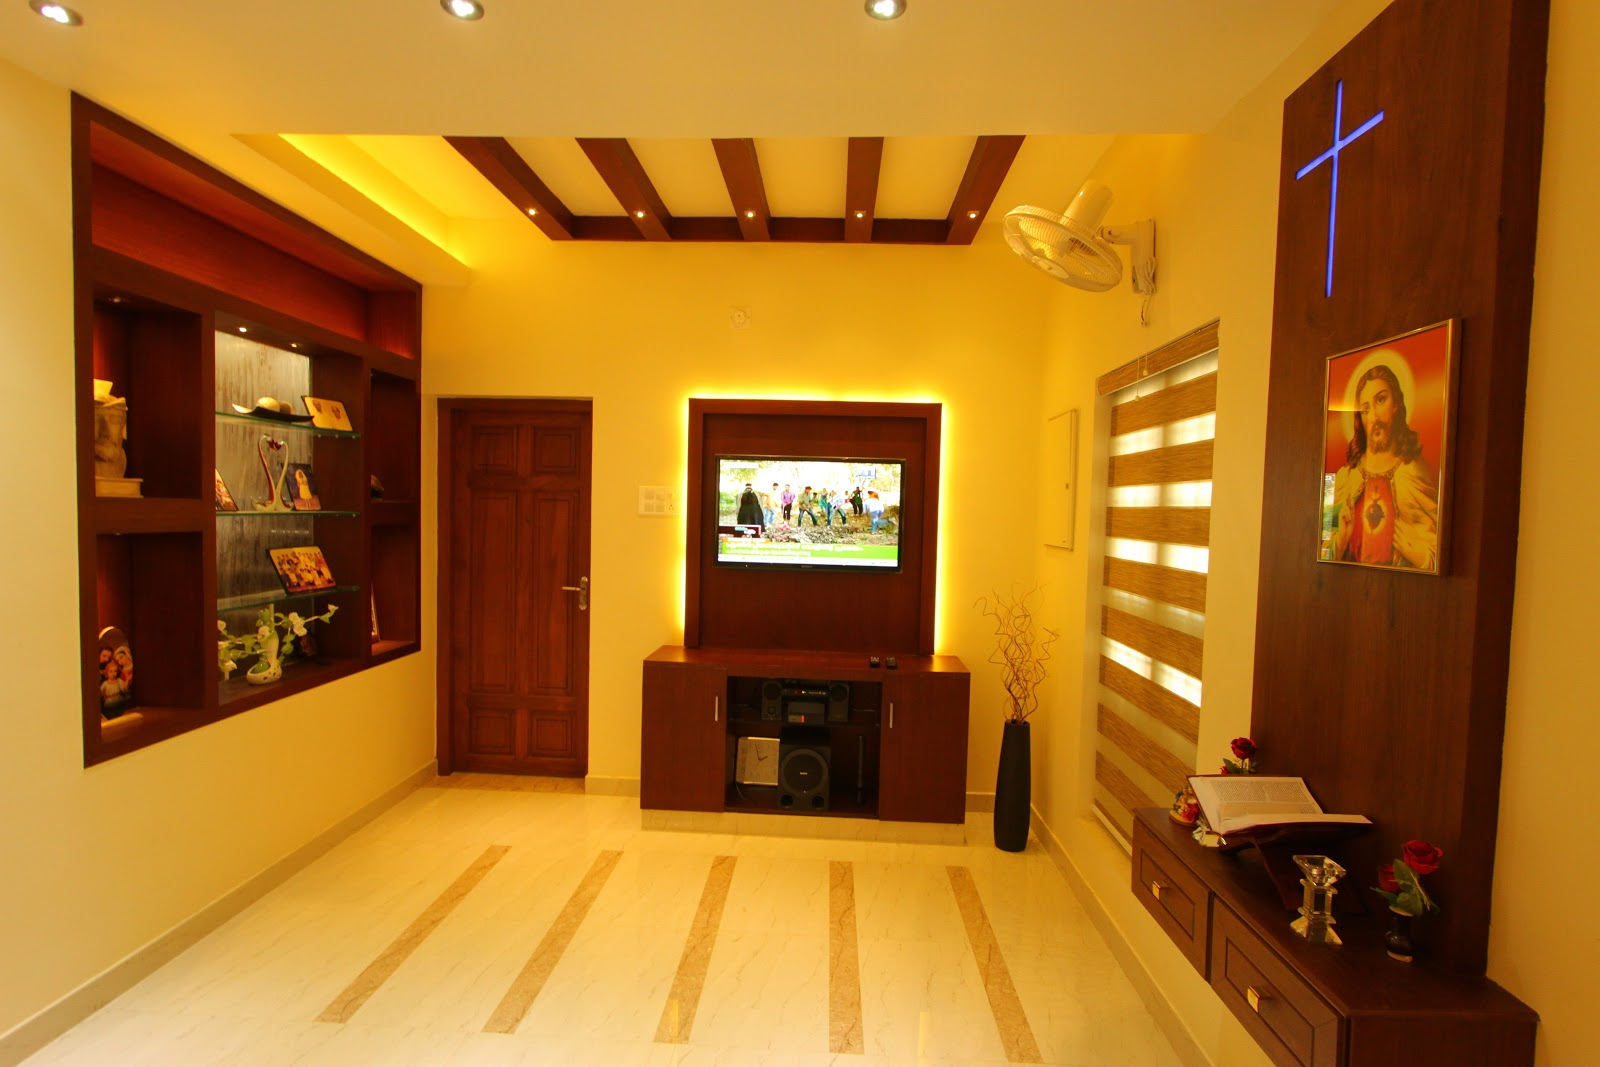 Shilpakala interiors award winning home interior design for An interior designer